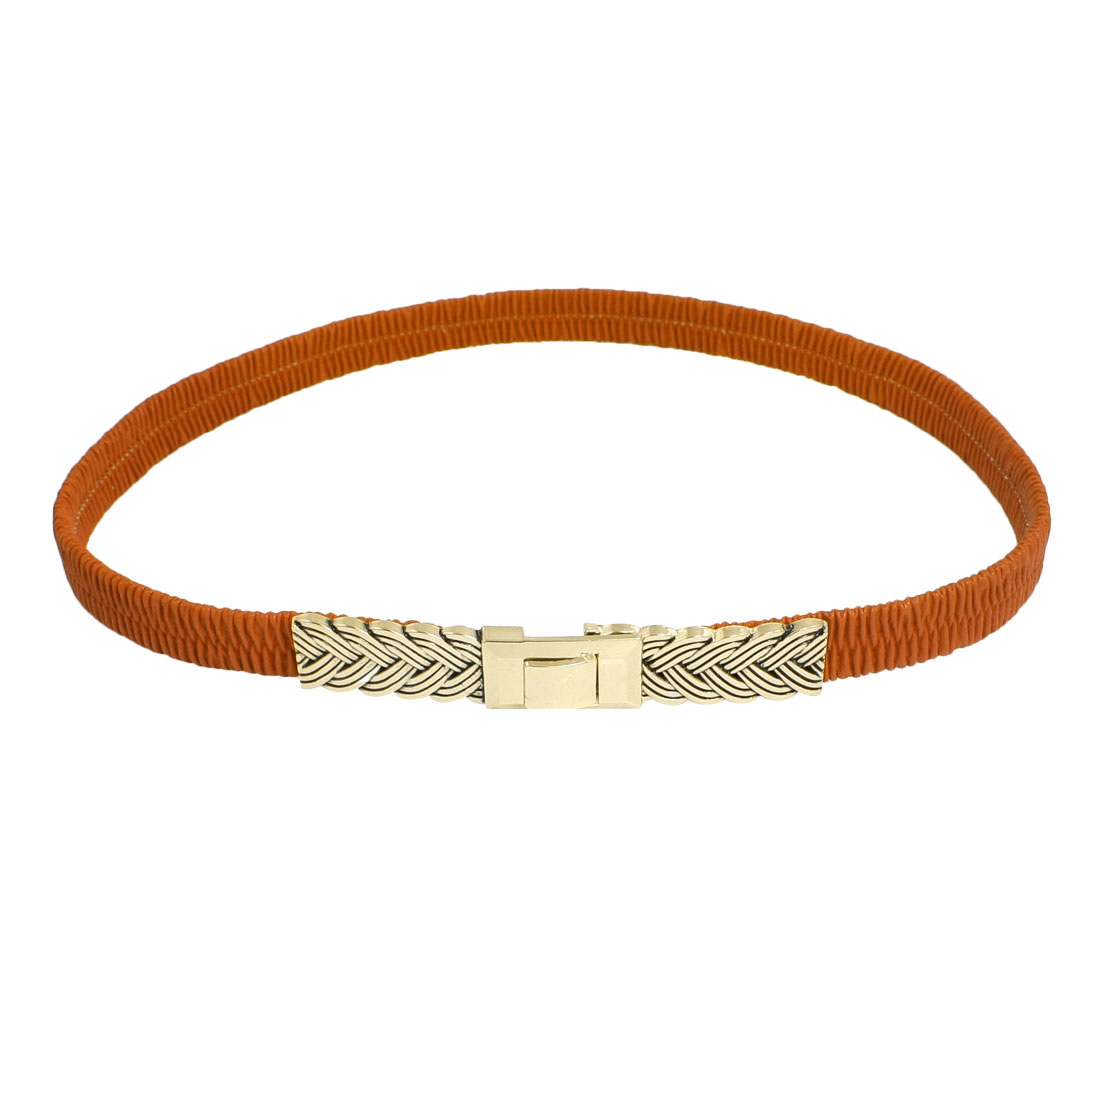 Lady Interlocking Buckle Faux Leather Elastic Dressing Cinch Belt Orange